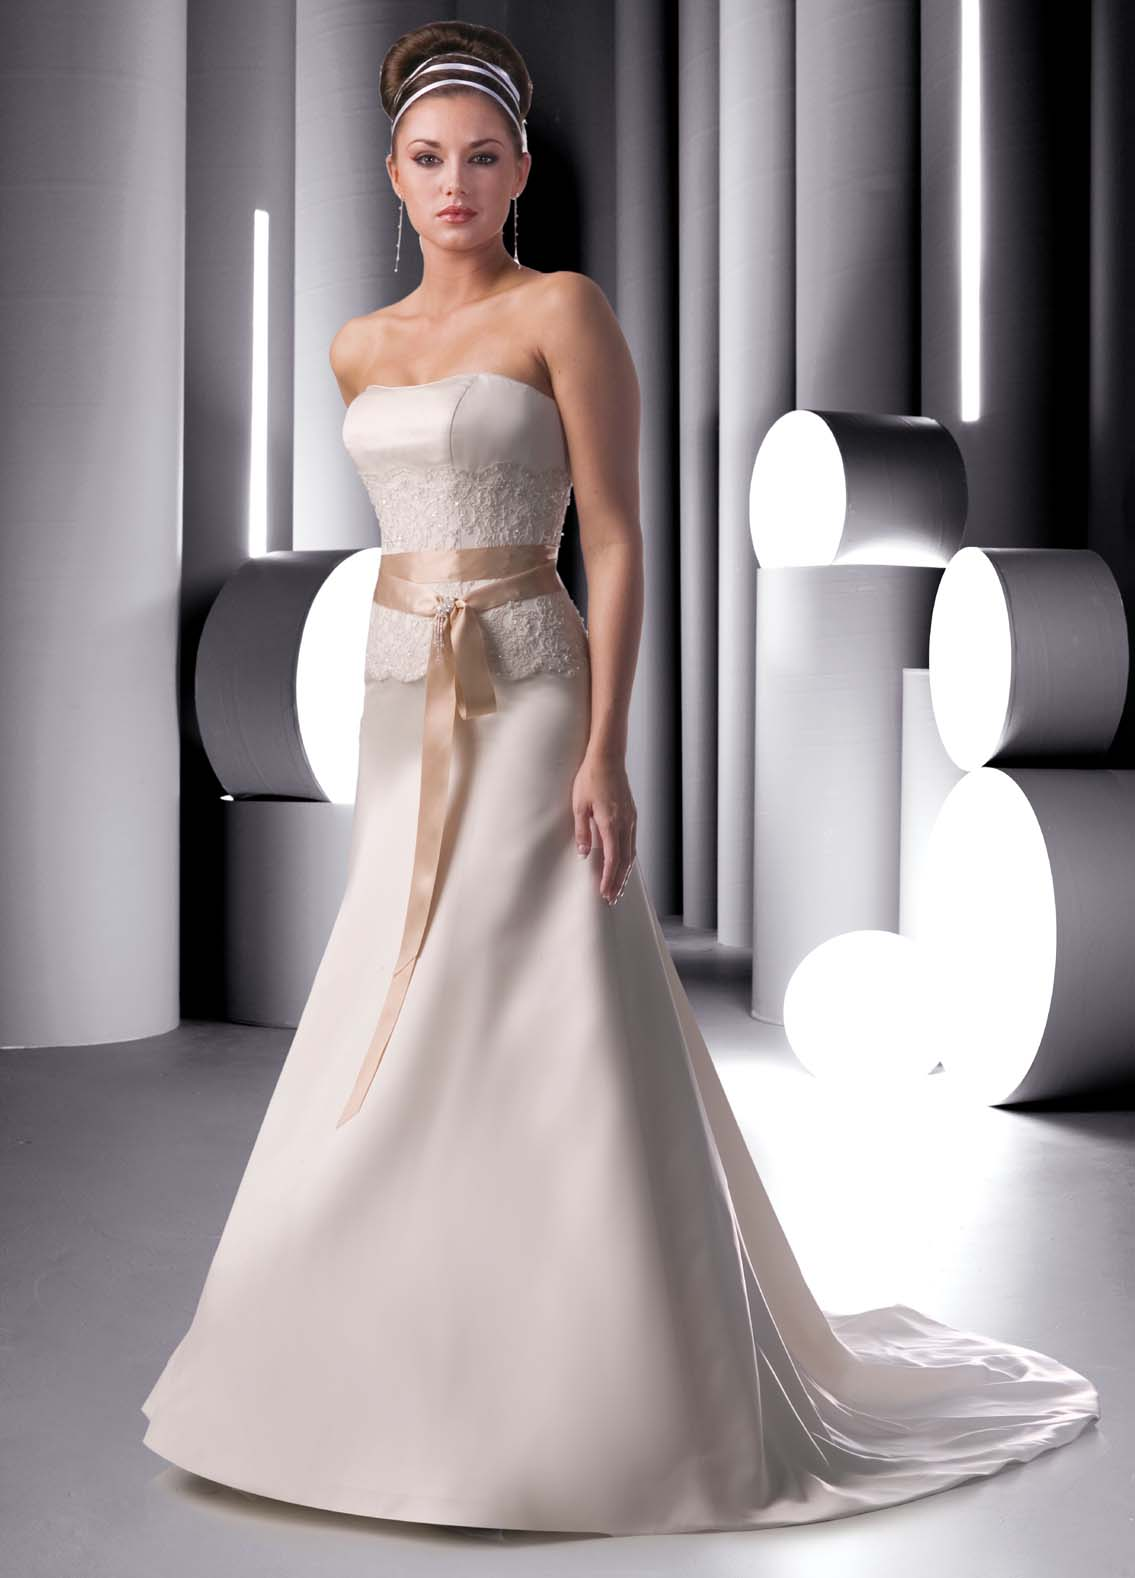 strapless wedding gown with sash